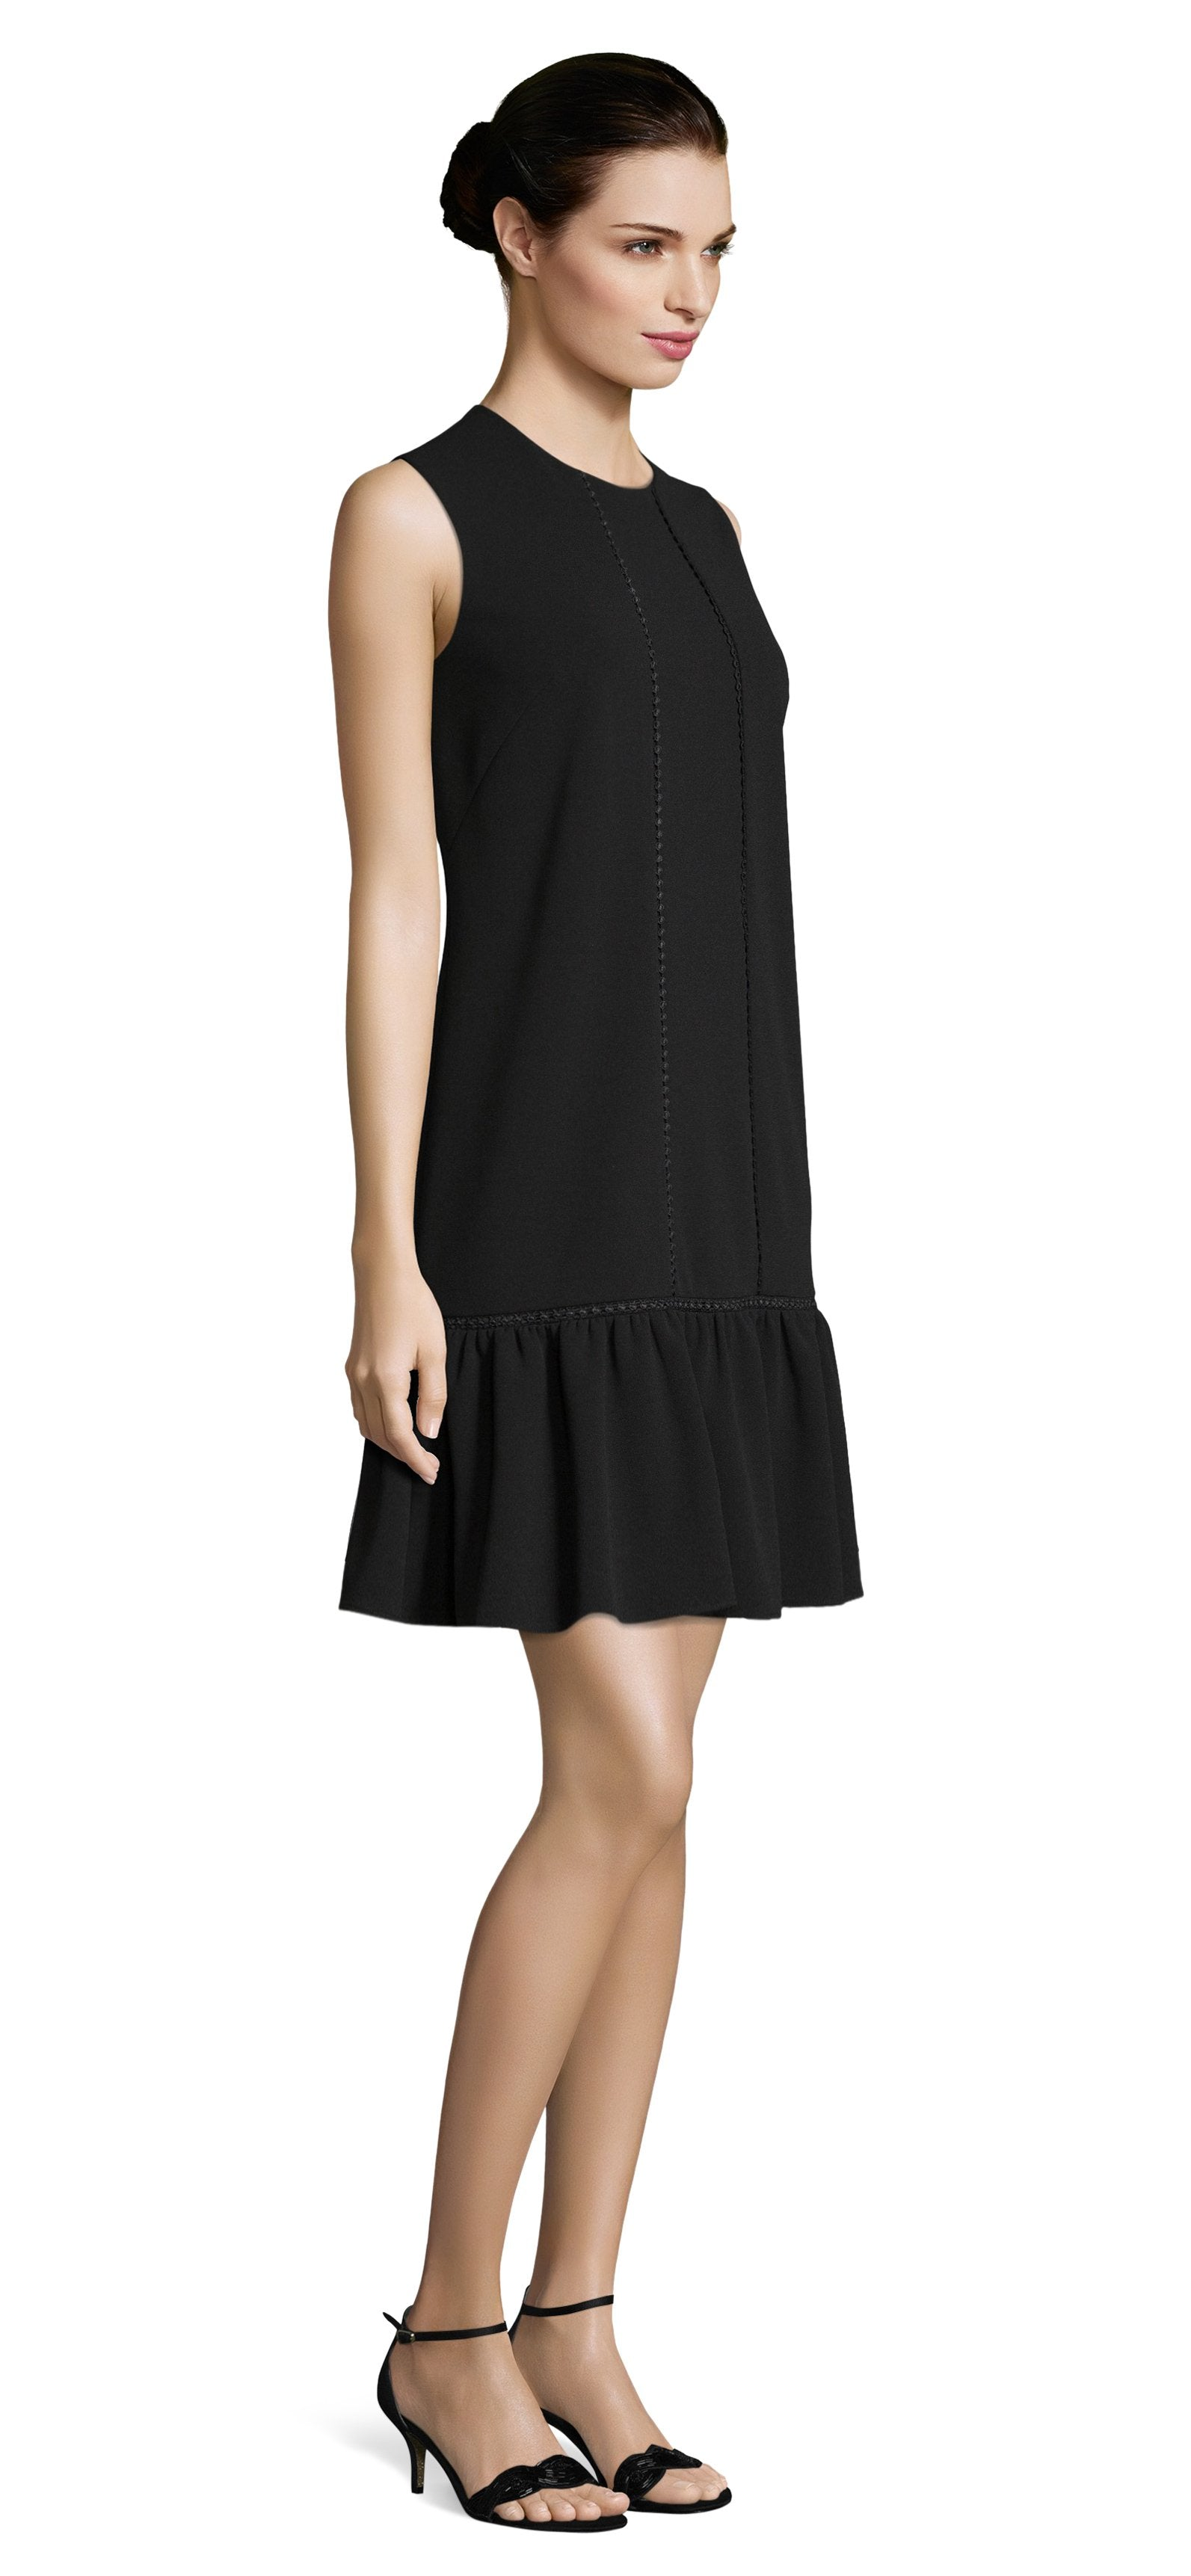 Adrianna Papell - AP1D102305 Sleeveless Jewel Cocktail Dress In Black